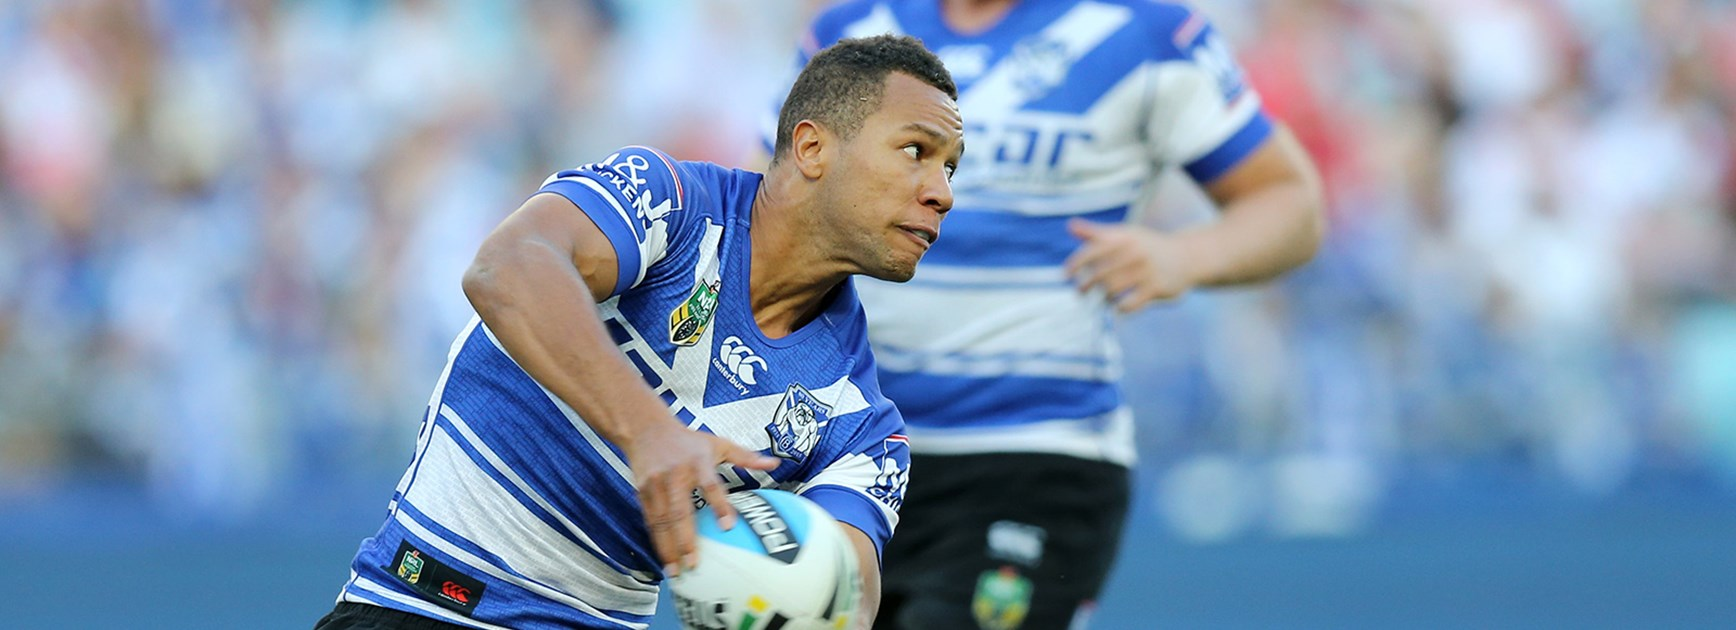 Moses Mbye starred in the Bulldogs' victory over the Dragons in Round 13 of the Telstra Premiership.